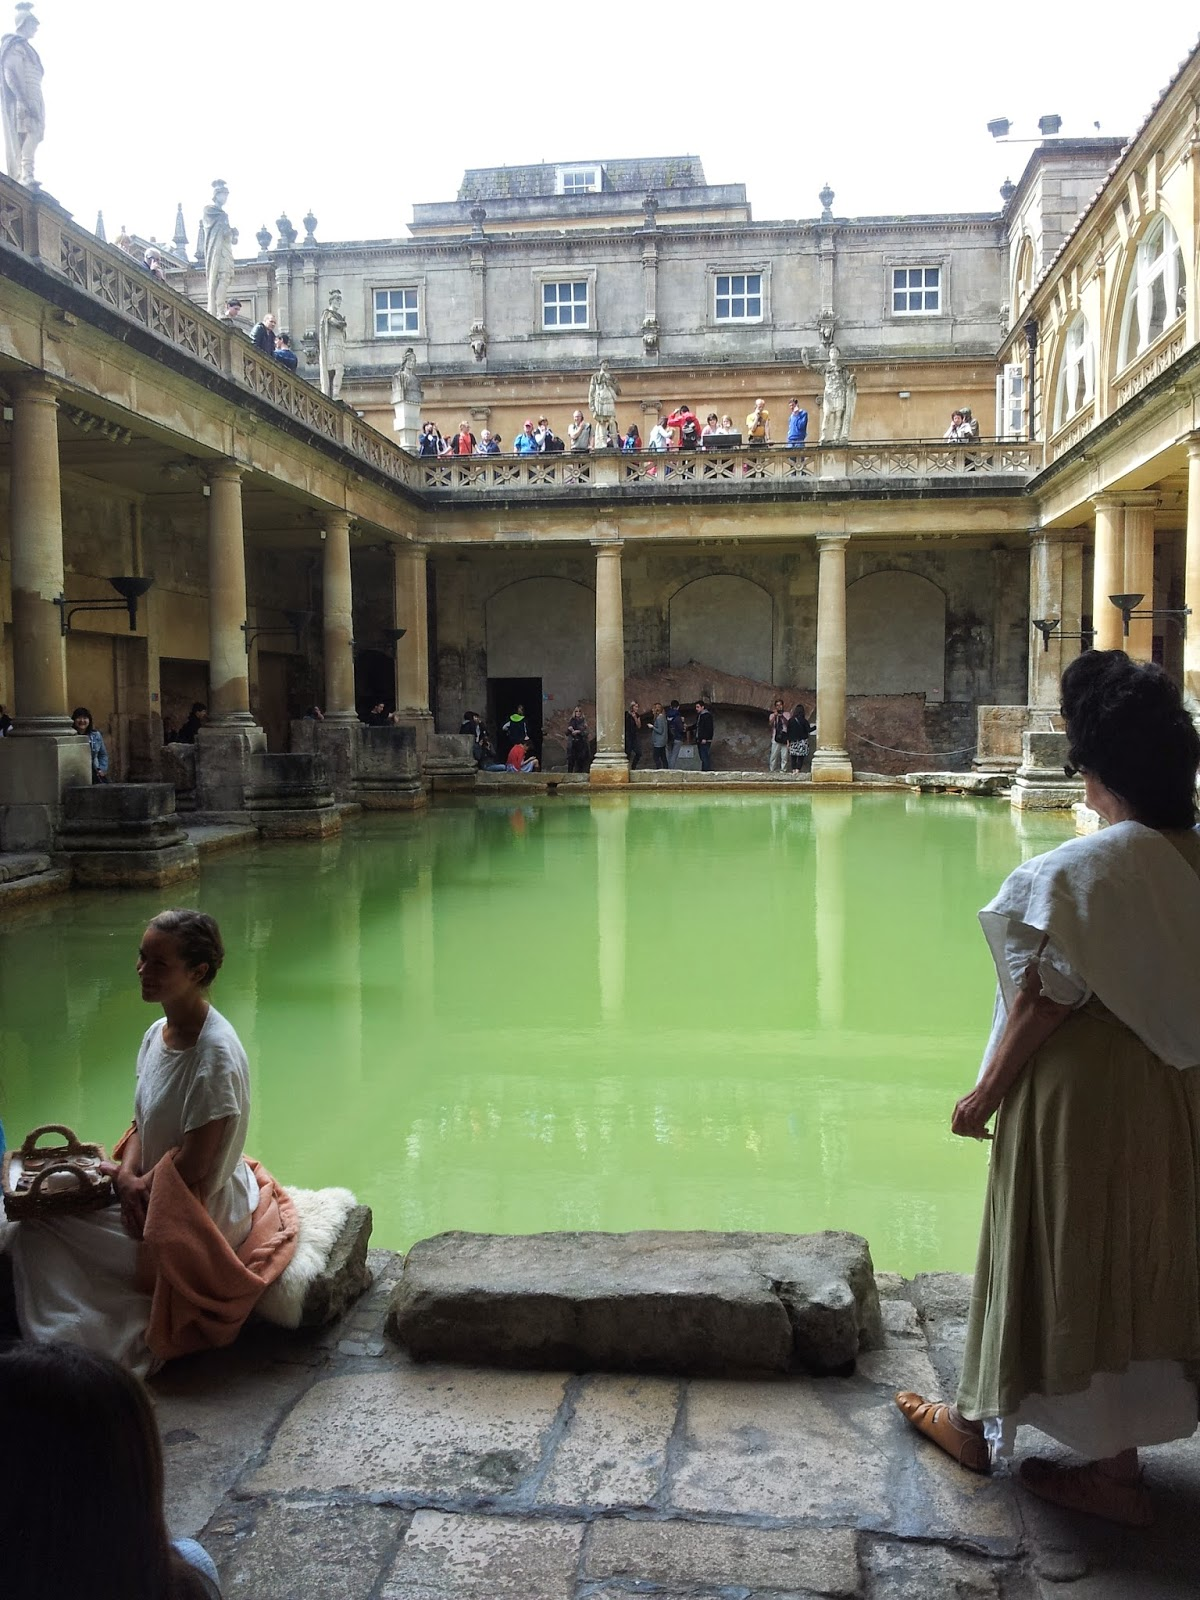 Main pool of Roman baths